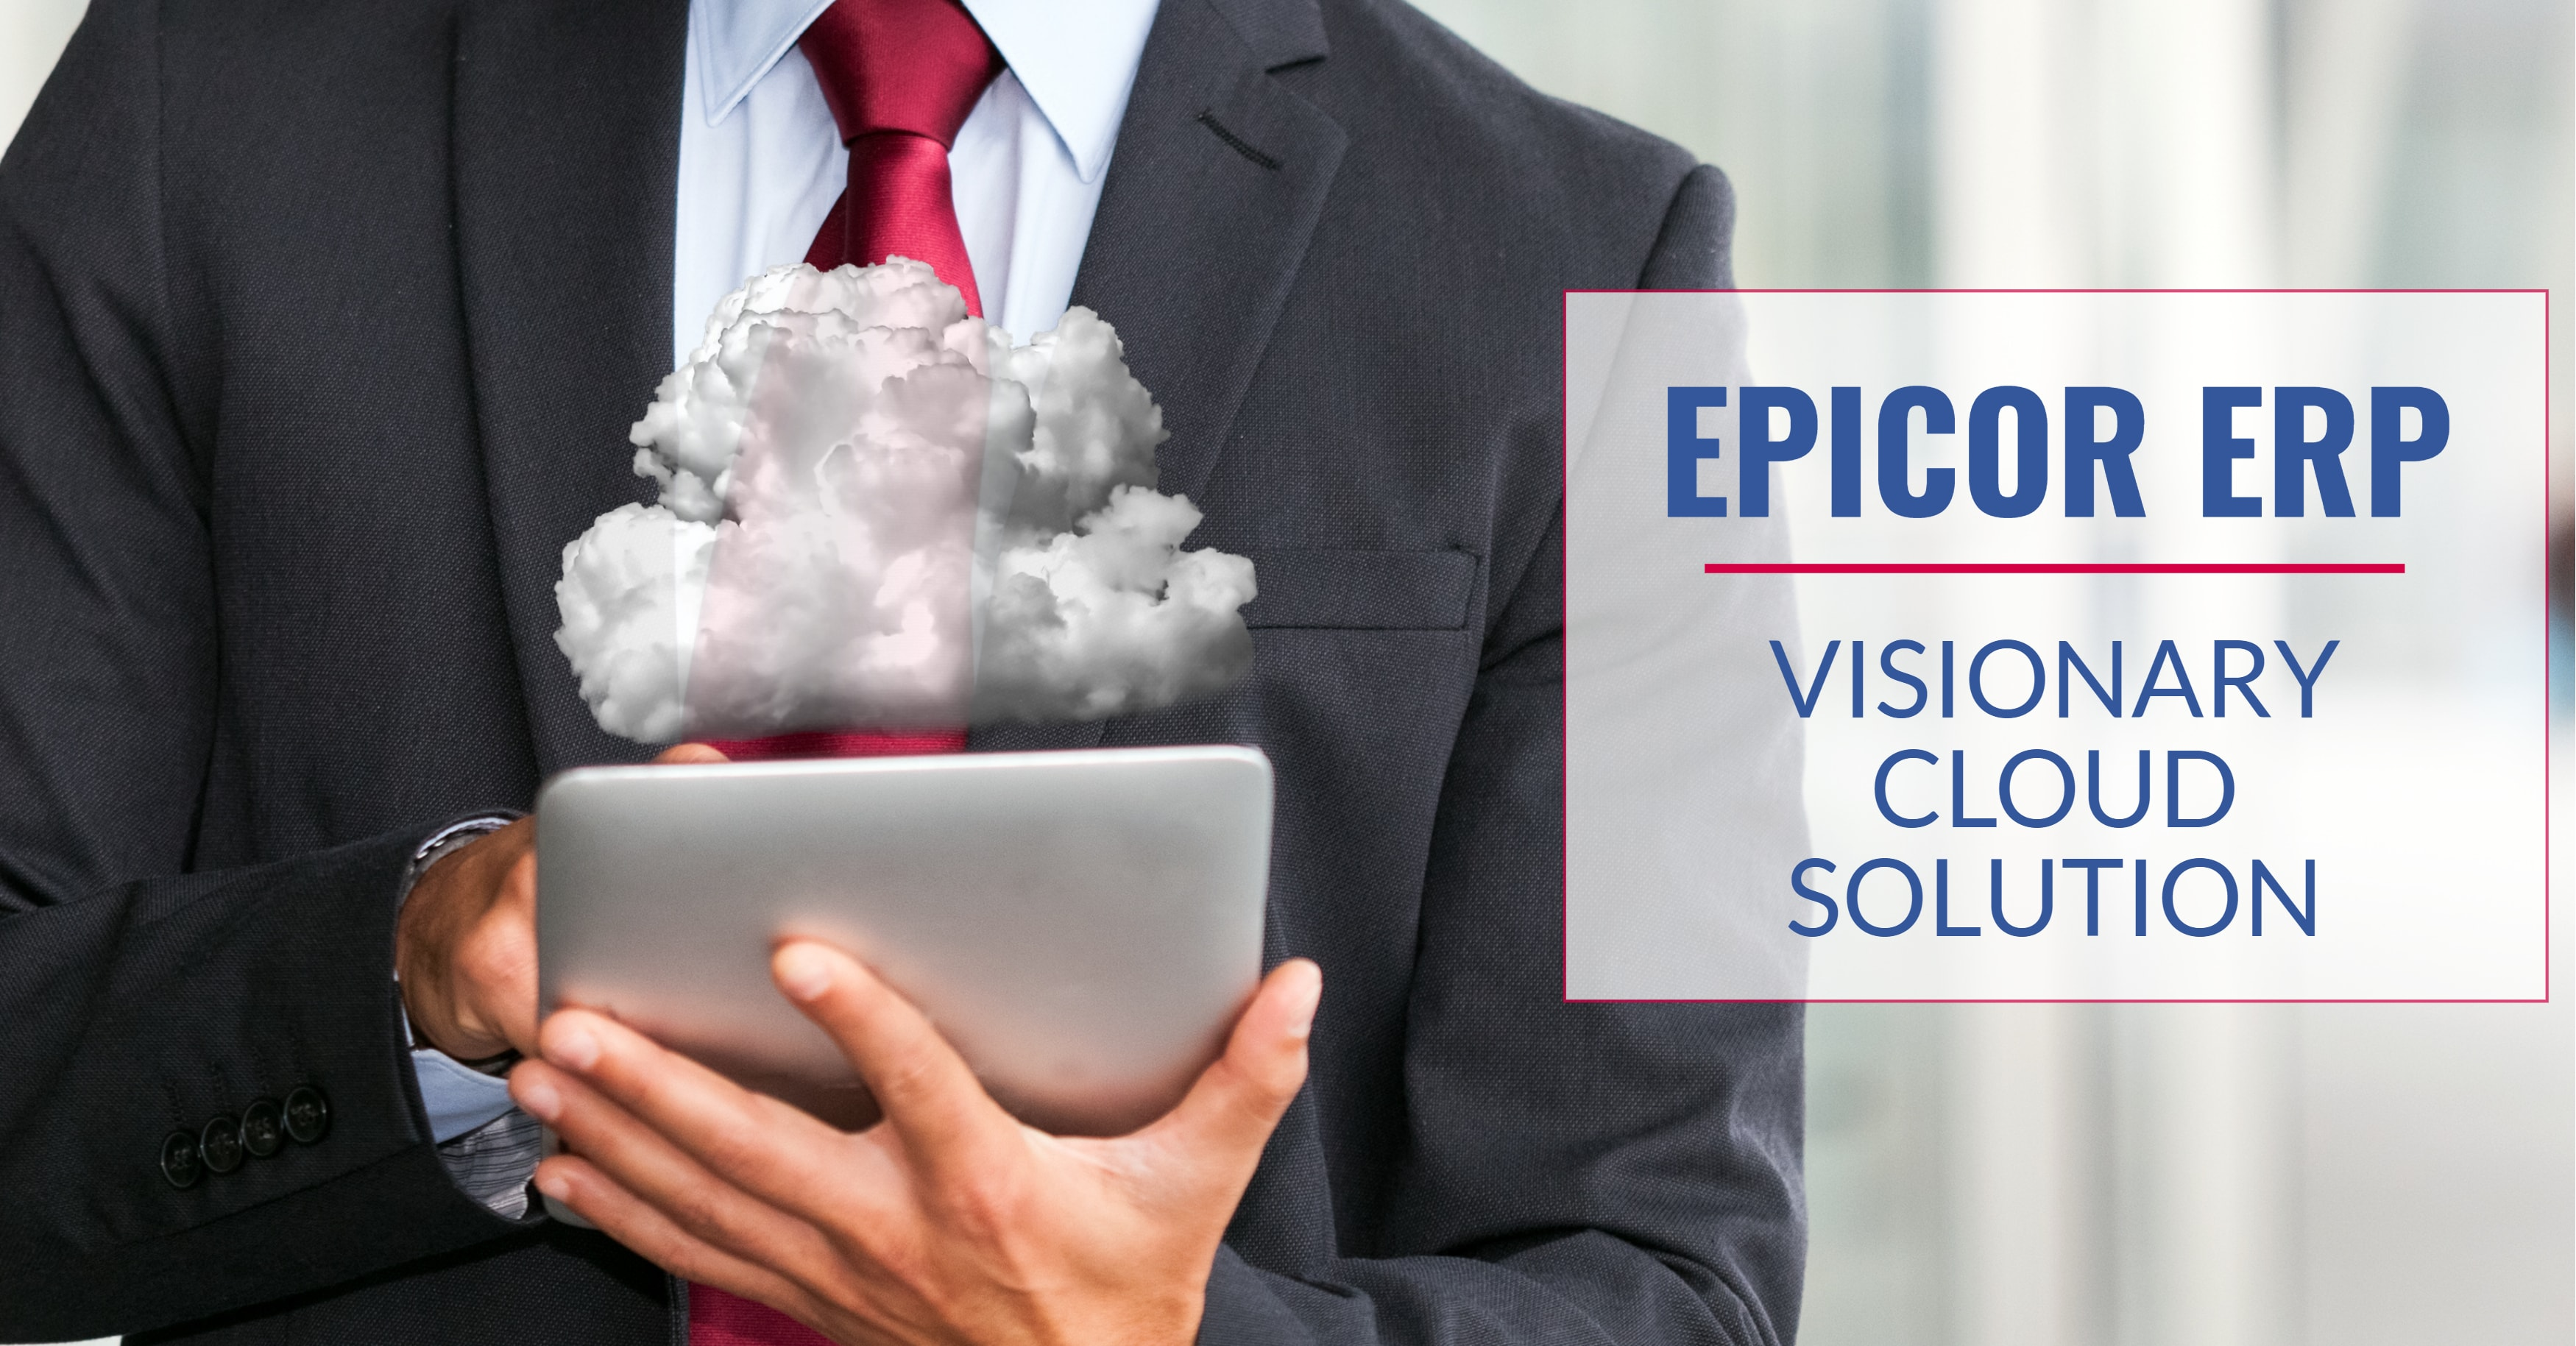 Epicor Named a Visionary in Gartner Cloud ERP Magic Quadrant